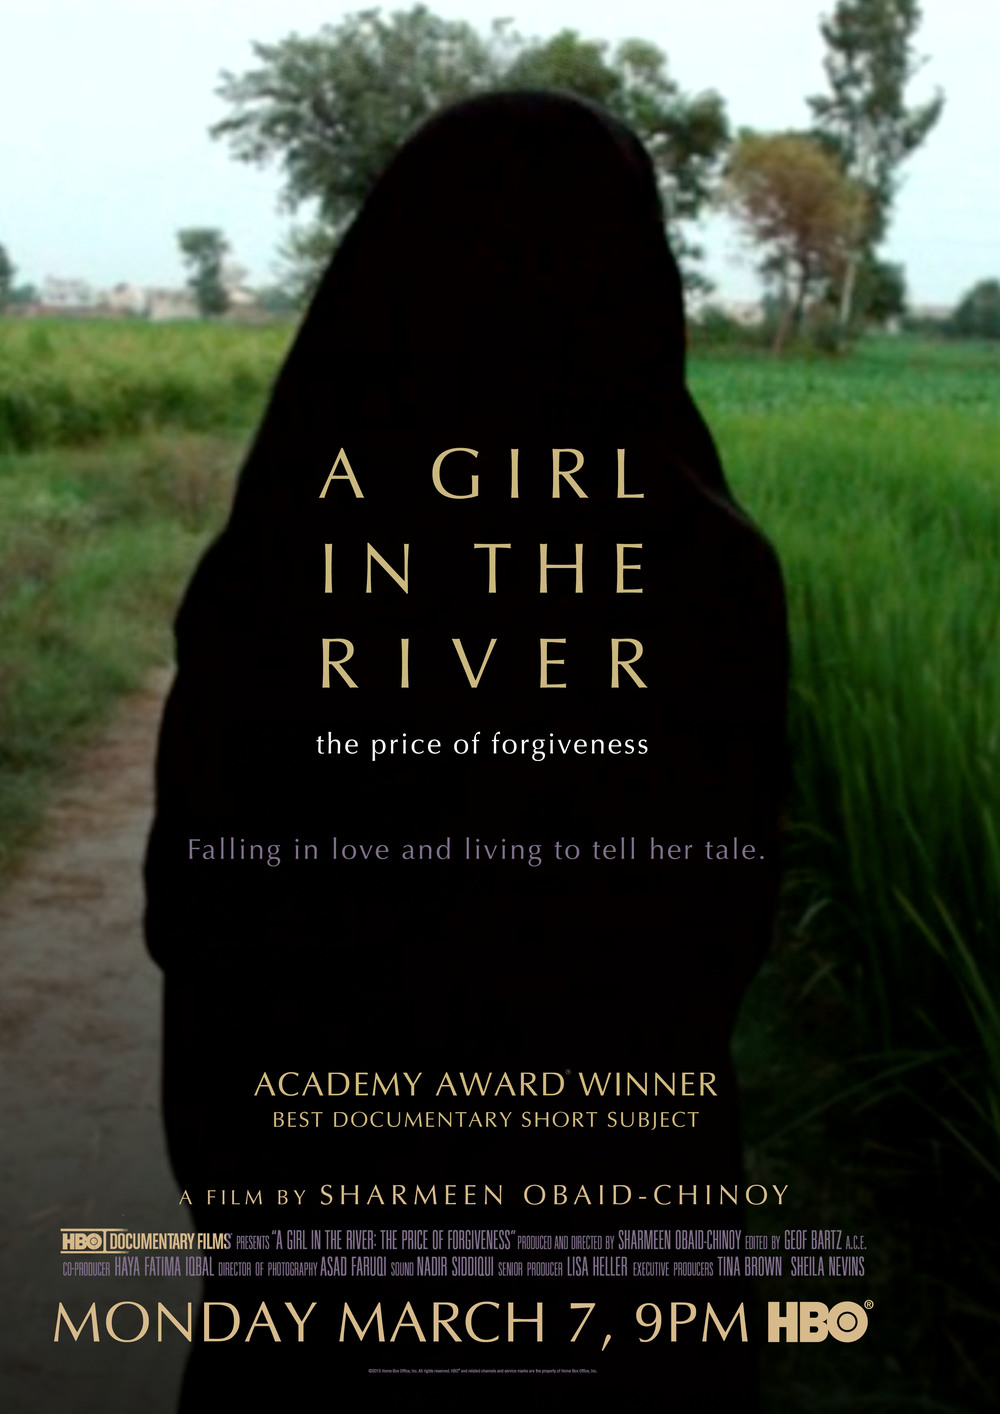 A GIRL IN THE RIVER POSTER.jpg